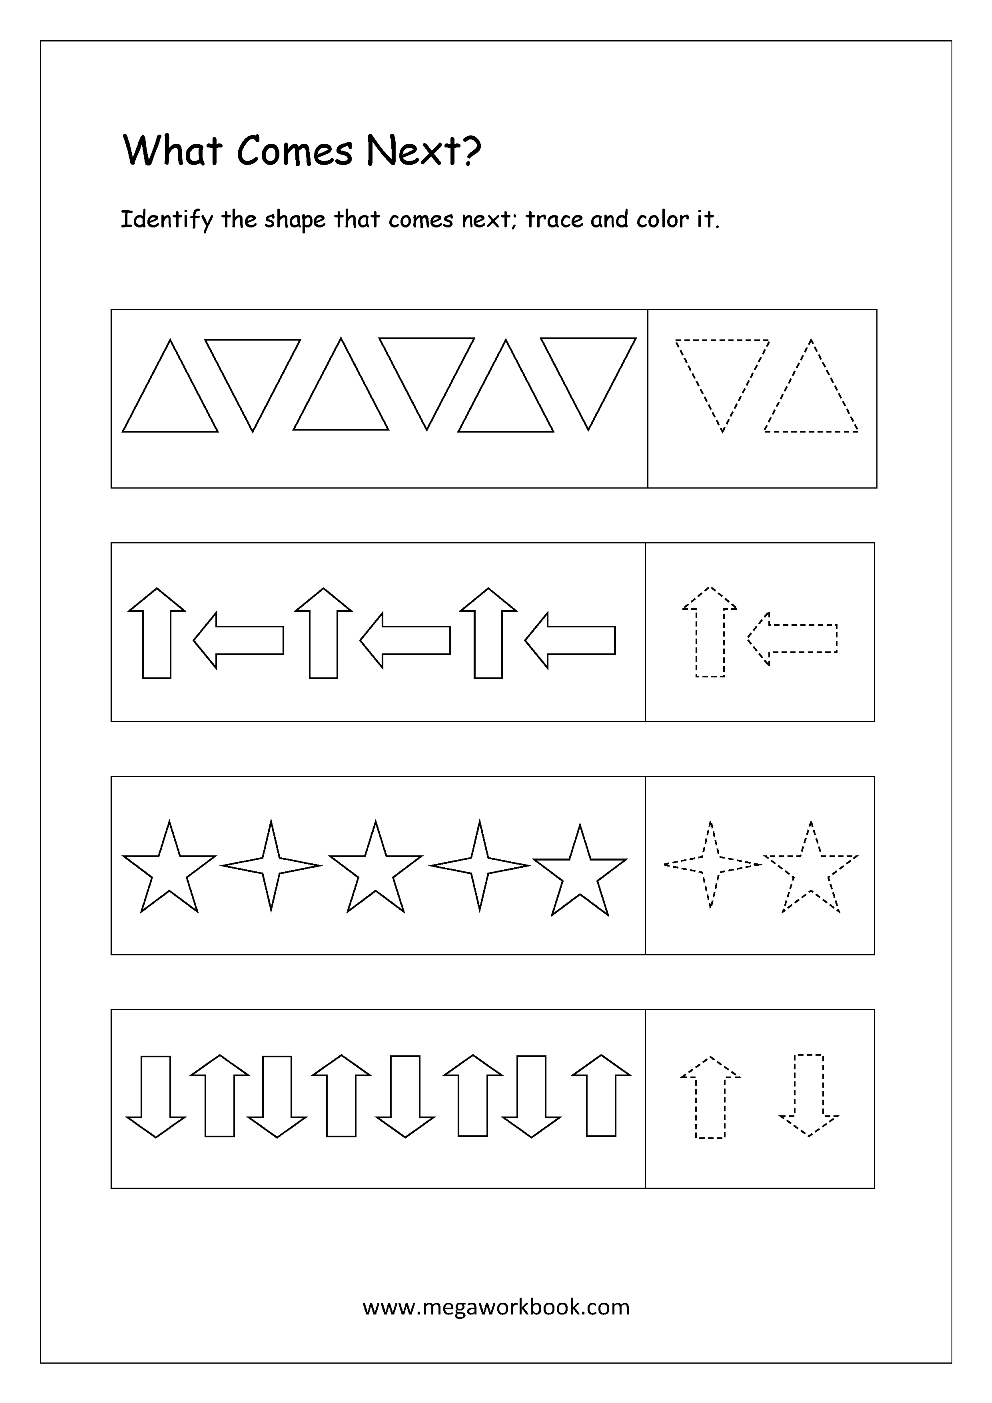 Free Pattern Identification Worksheets - What Comes Next ...